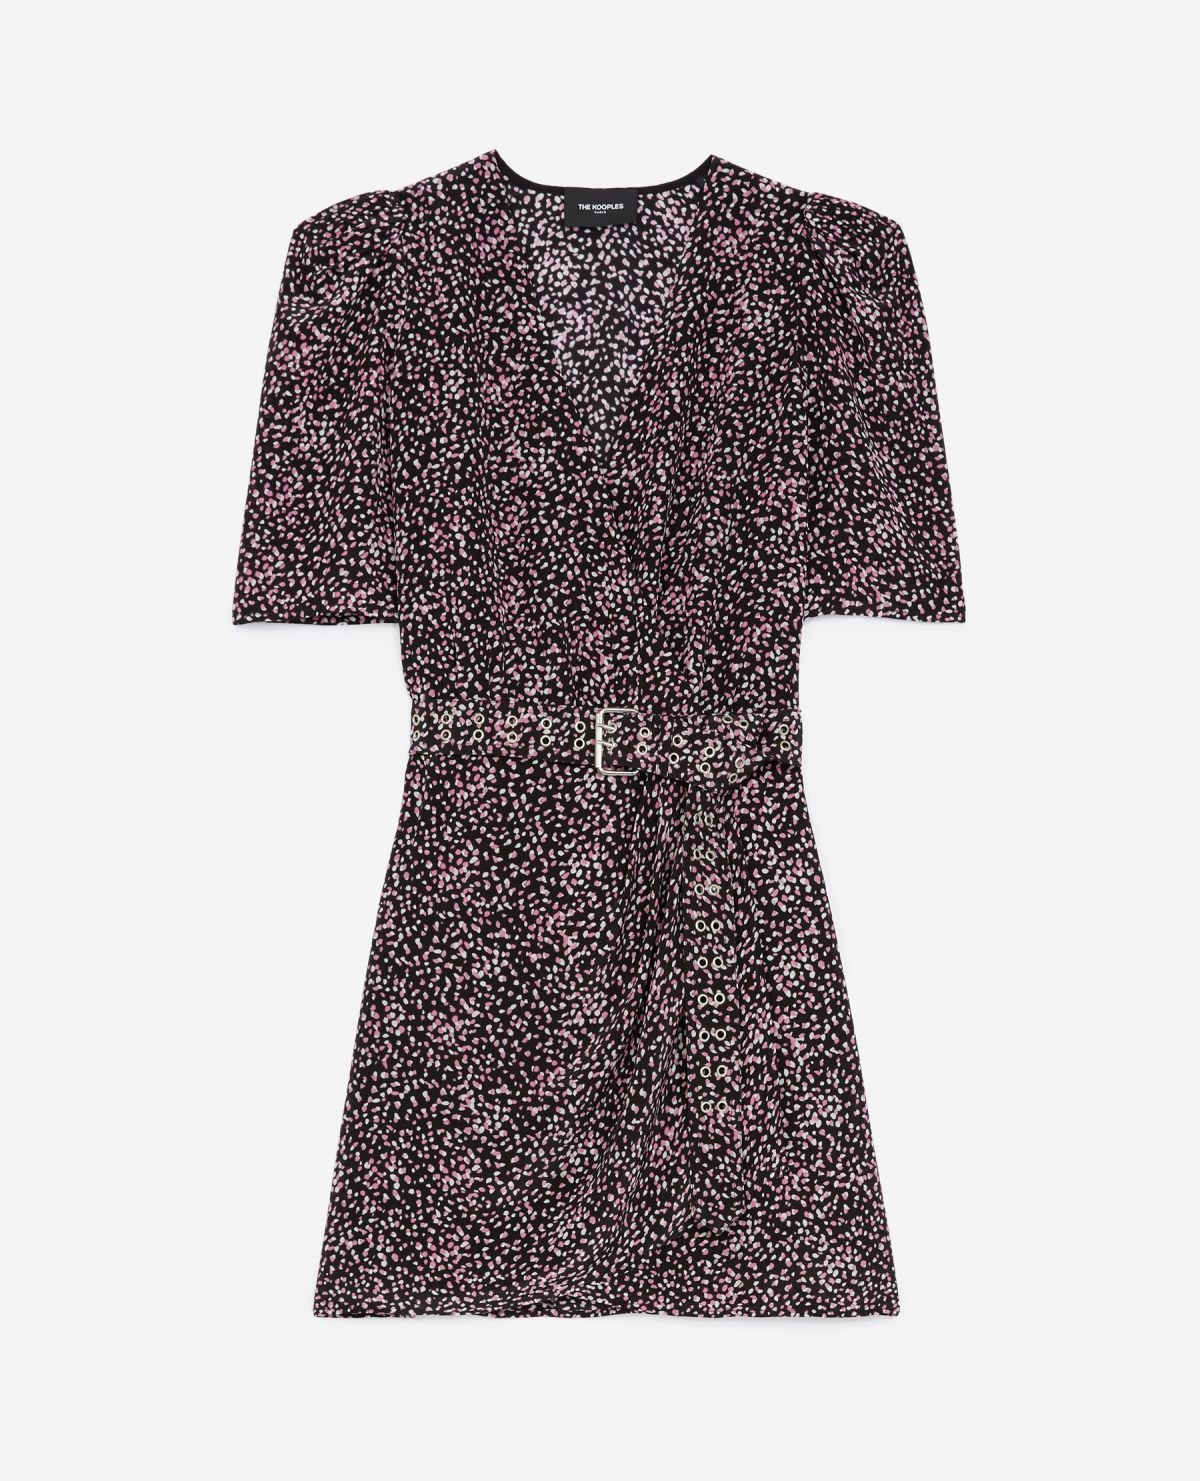 THE KOOPLES robe portefeuille-1